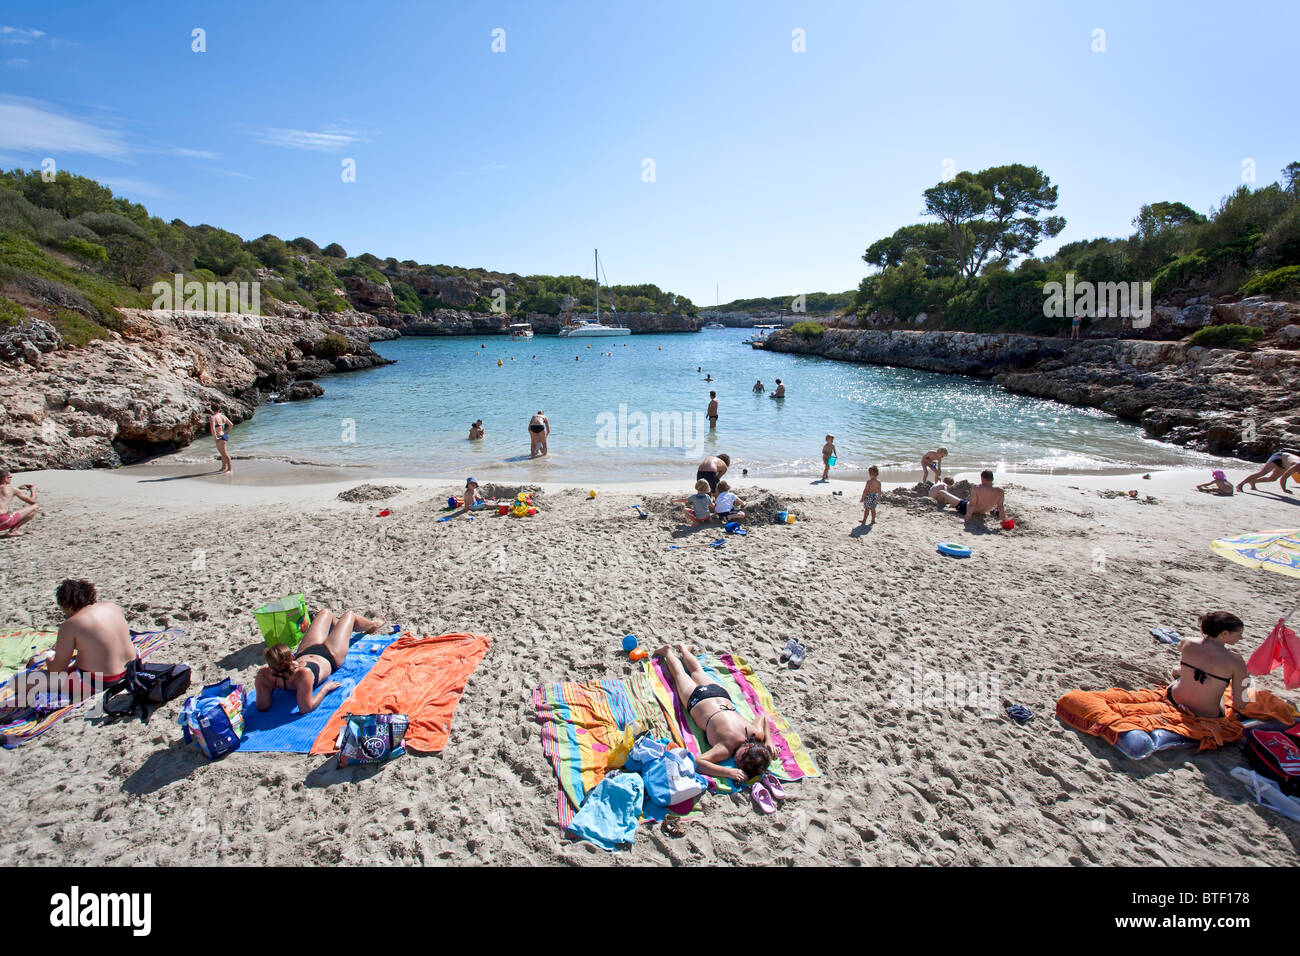 People sunbathing. Cala Sa Nau beach. Felanitx. Mallorca Island. Spain Stock Photo